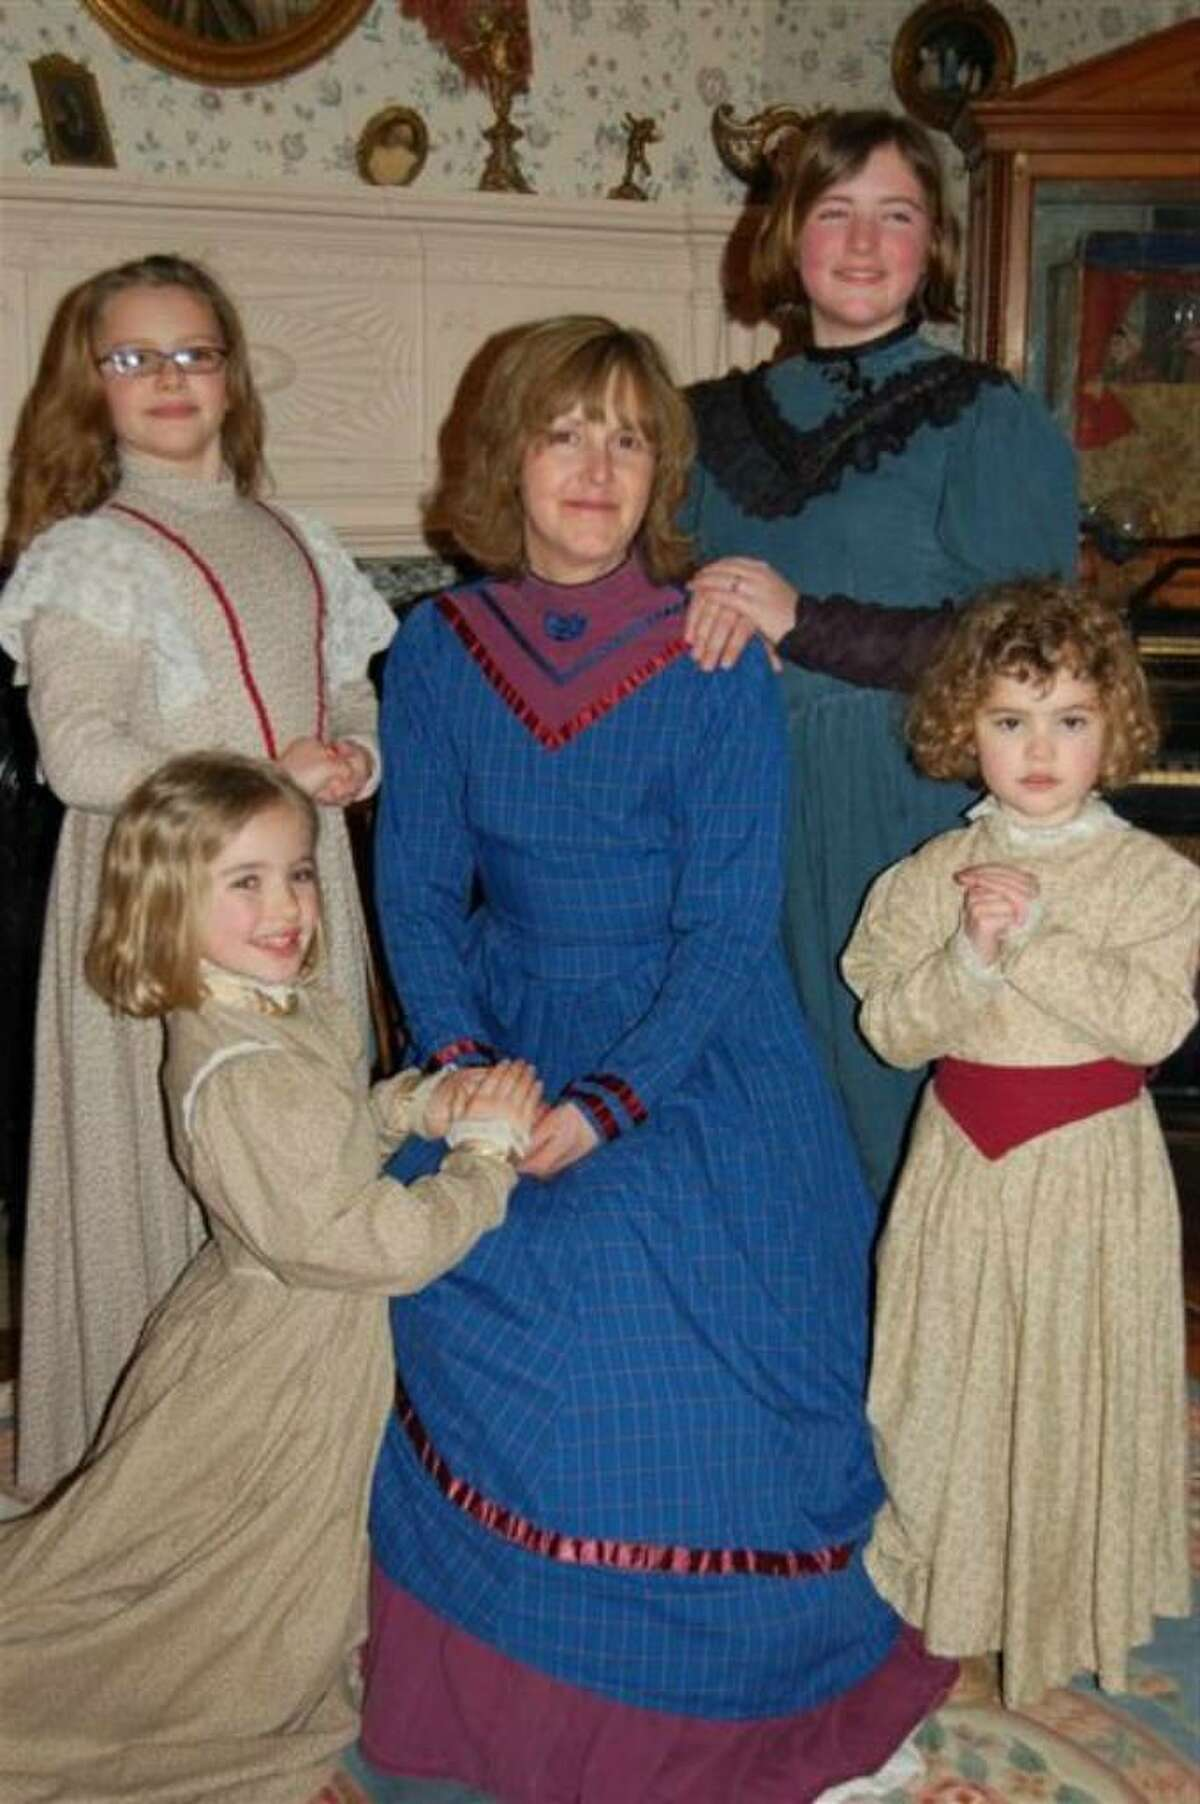 Laura Schonhiutt of Niskayuna, who died Dec. 7 after a long battle with breast cancer, is pictured with her four daughters. Clockwise from left are Rachel, Tori, Liz and Sarah. The family are in period dress at a Victorian tea party for Tori's 11th birthday earlier this year. (Photo provided by Dana Donohue)